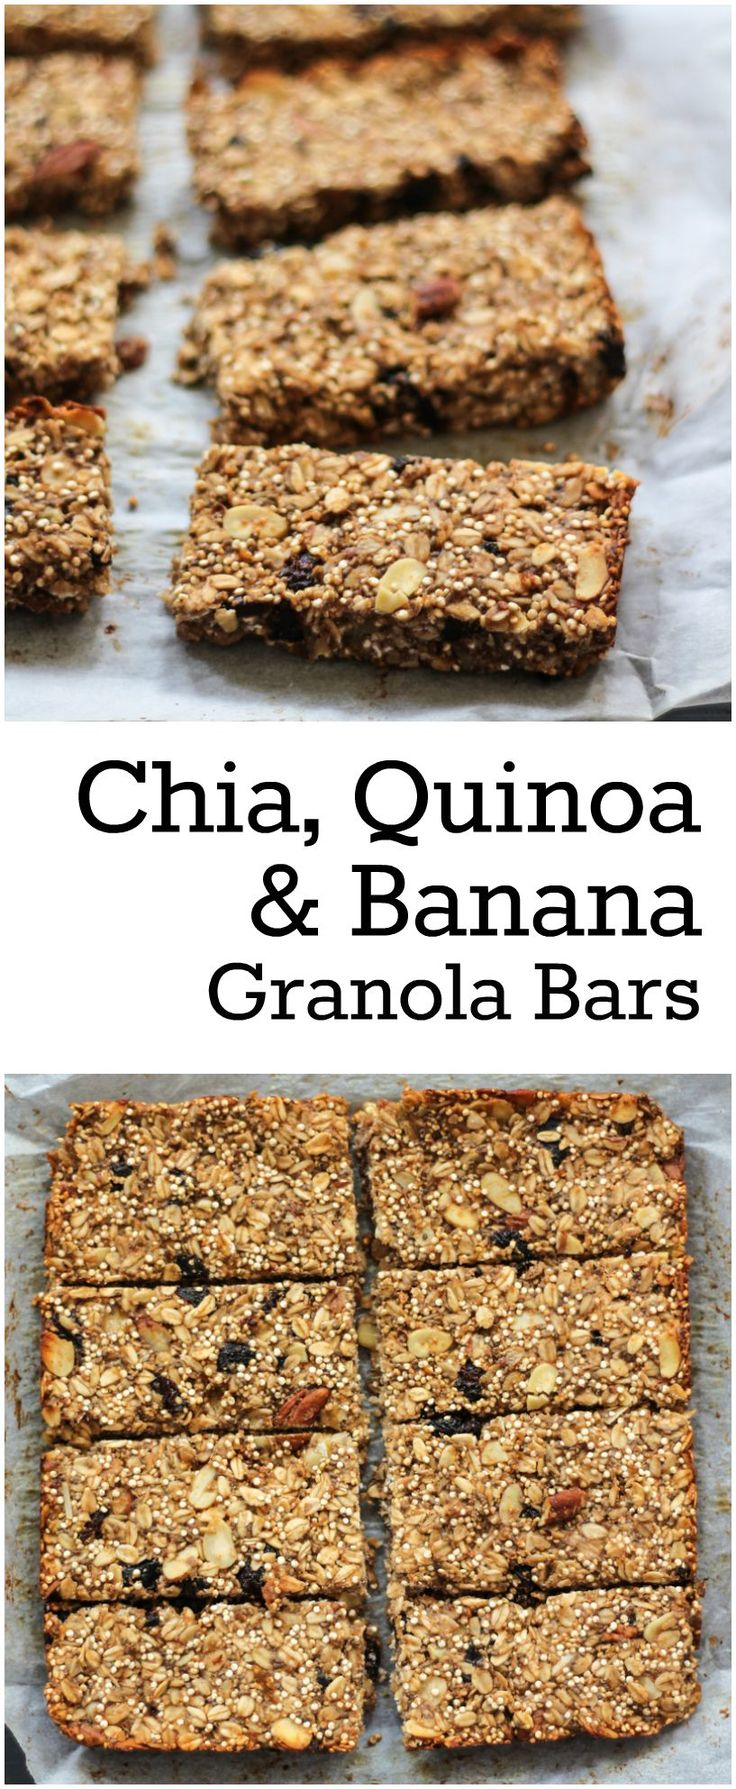 These granola bars are packed with banana dried fruit quinoa oats and chia seeds. They're a great on the go breakfast or fuel up snack! Gluten free too.